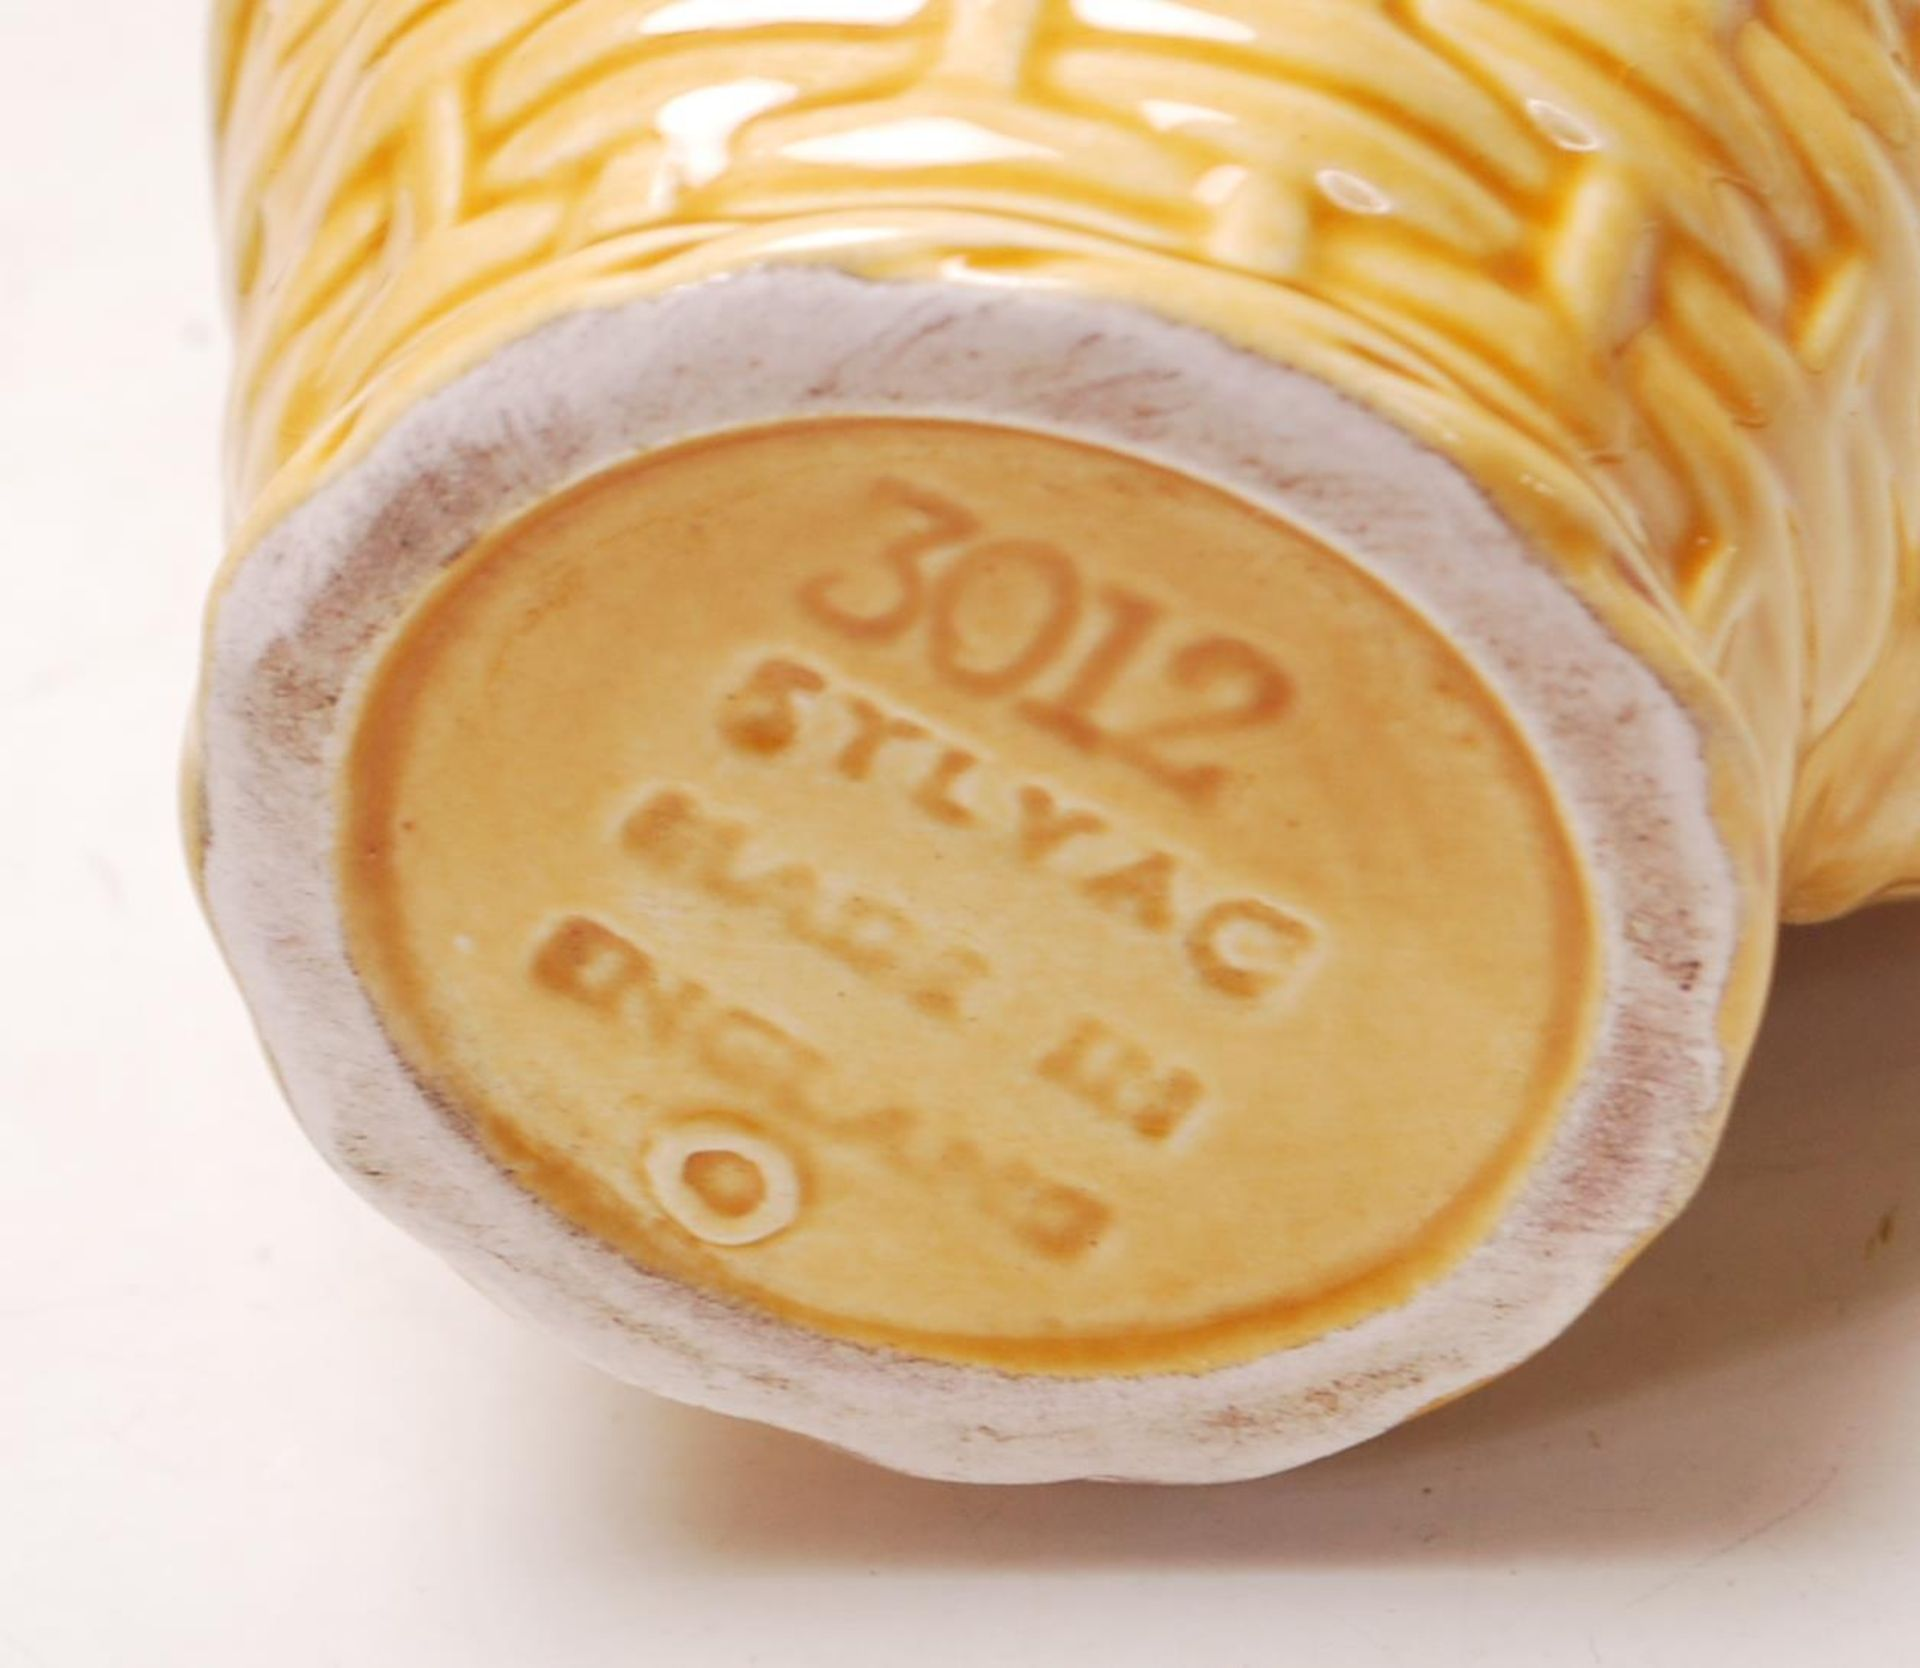 COLLECTION OF VINTAGE MID 20TH CENTURY SYLVAC CERAMIC POTTERY - Image 12 of 13